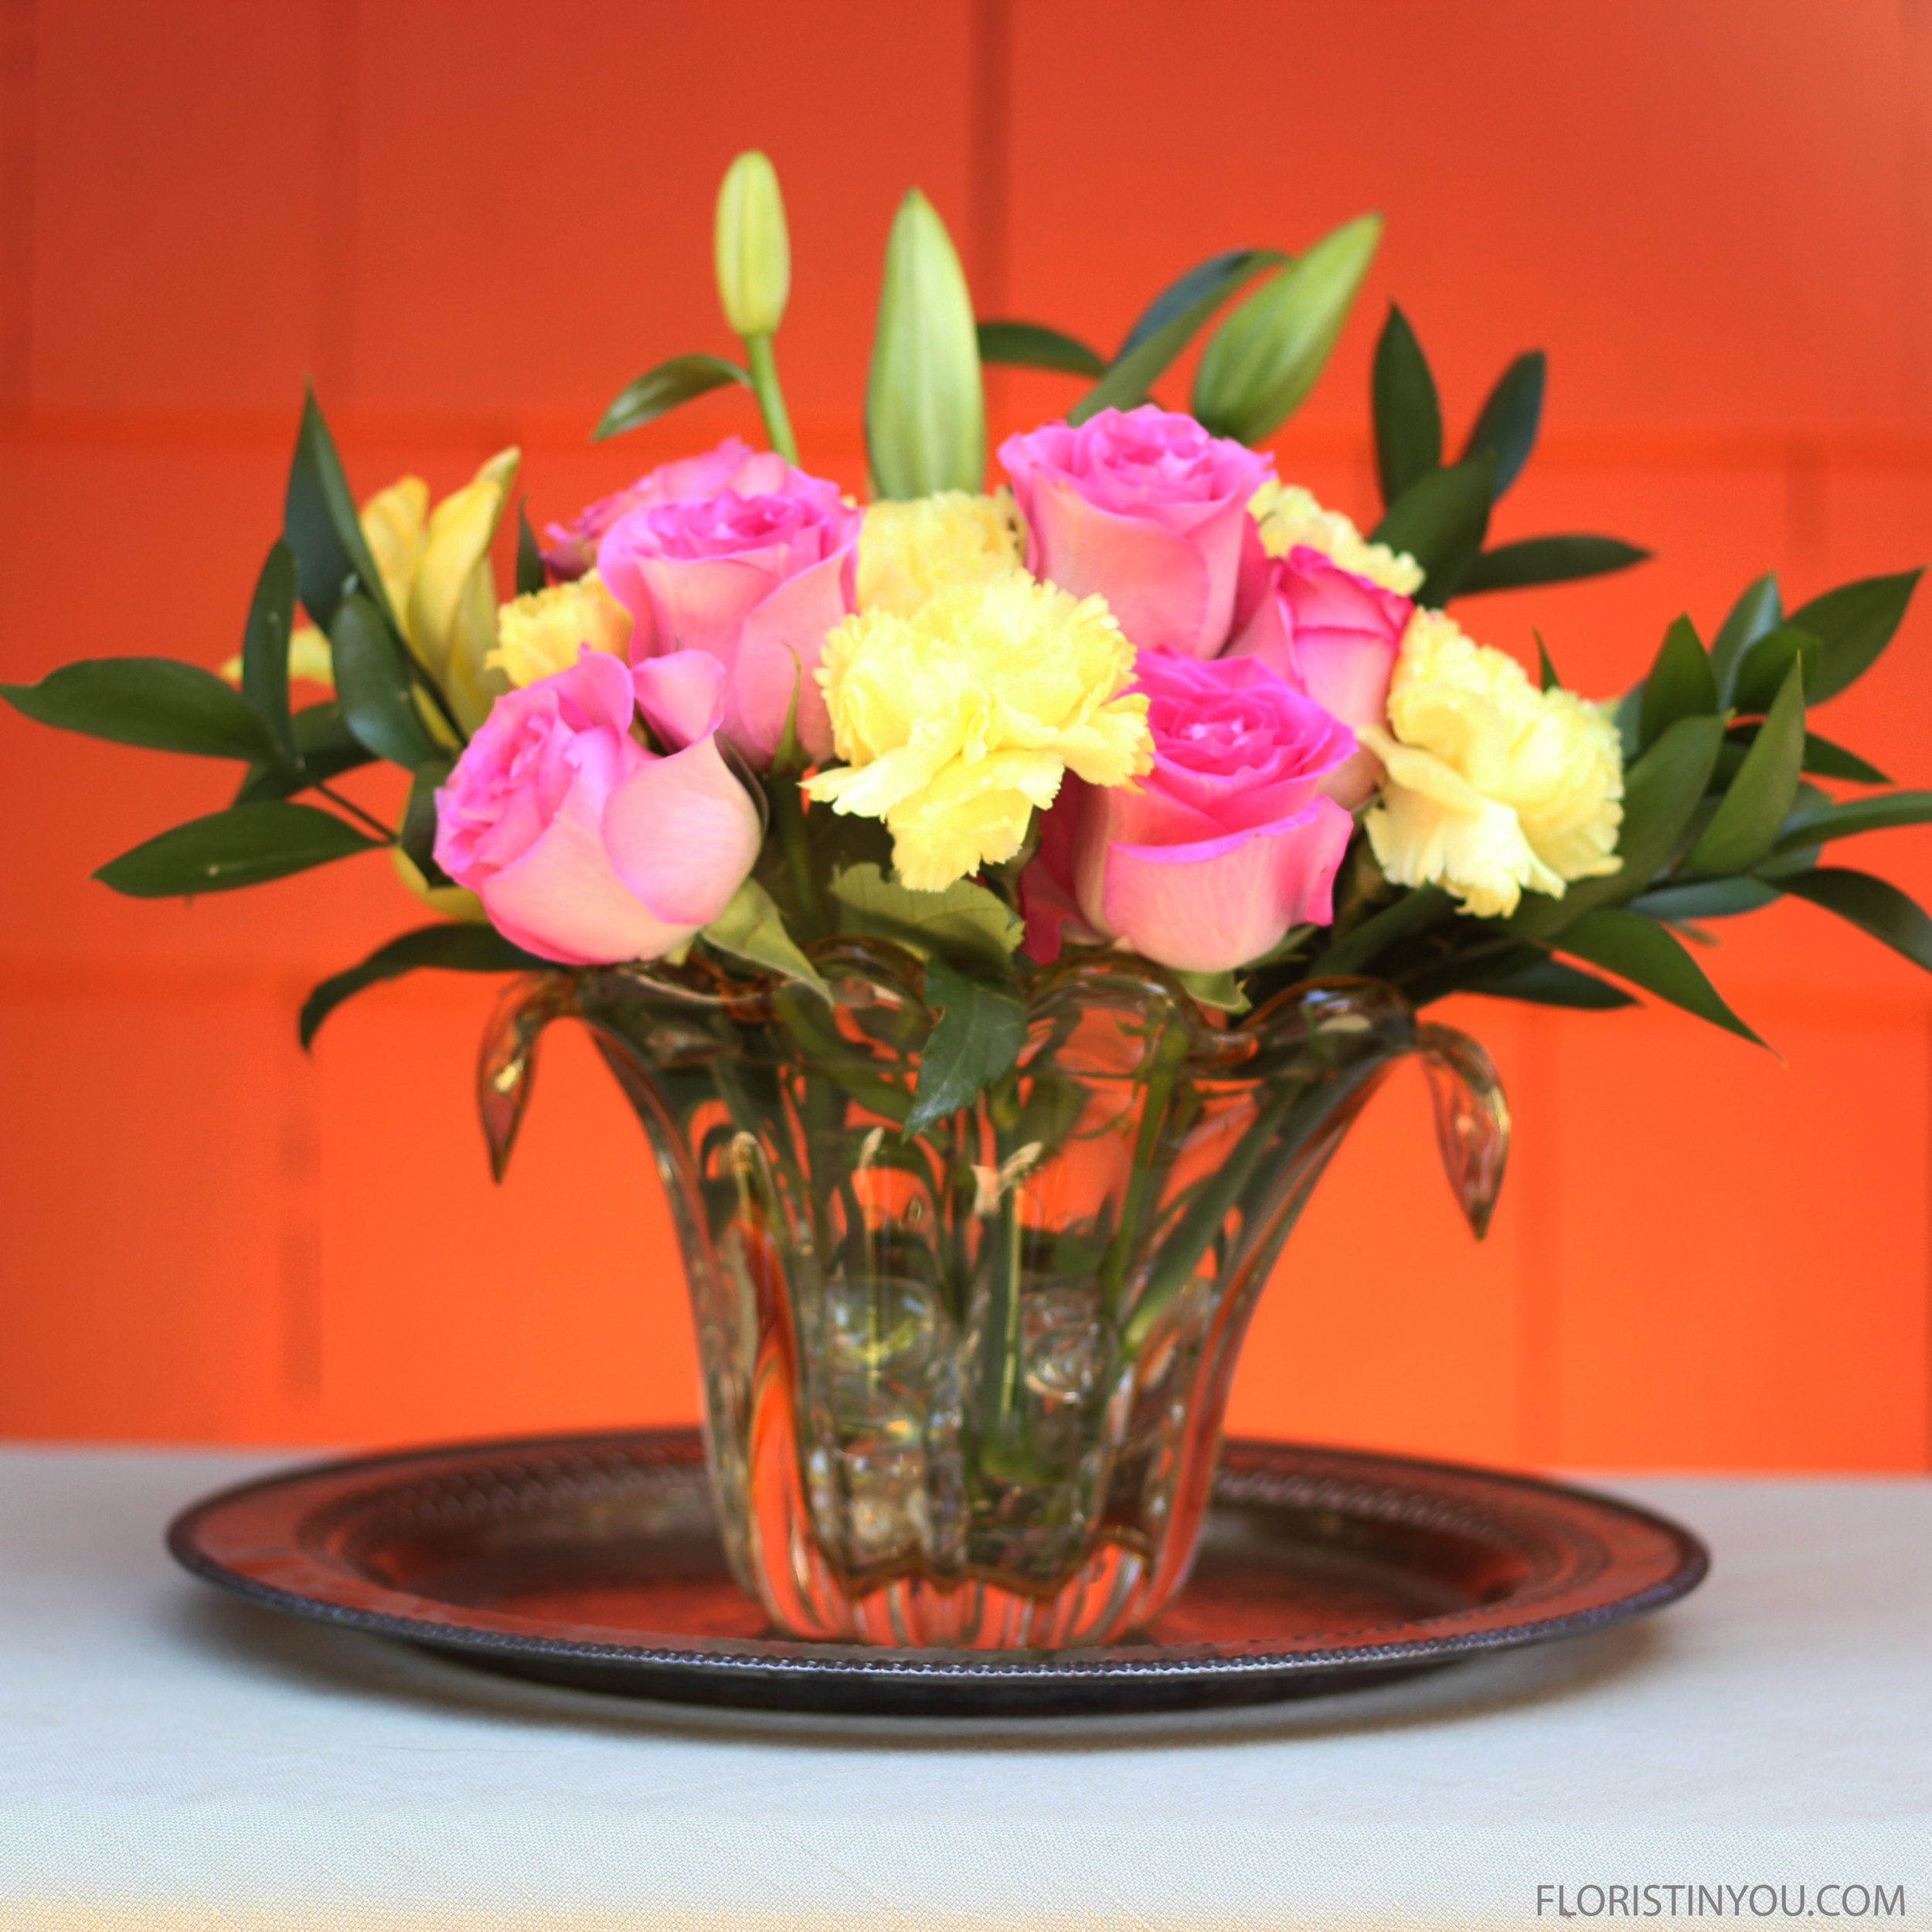 Arranging Flowers You Bought an Online in Your Vase